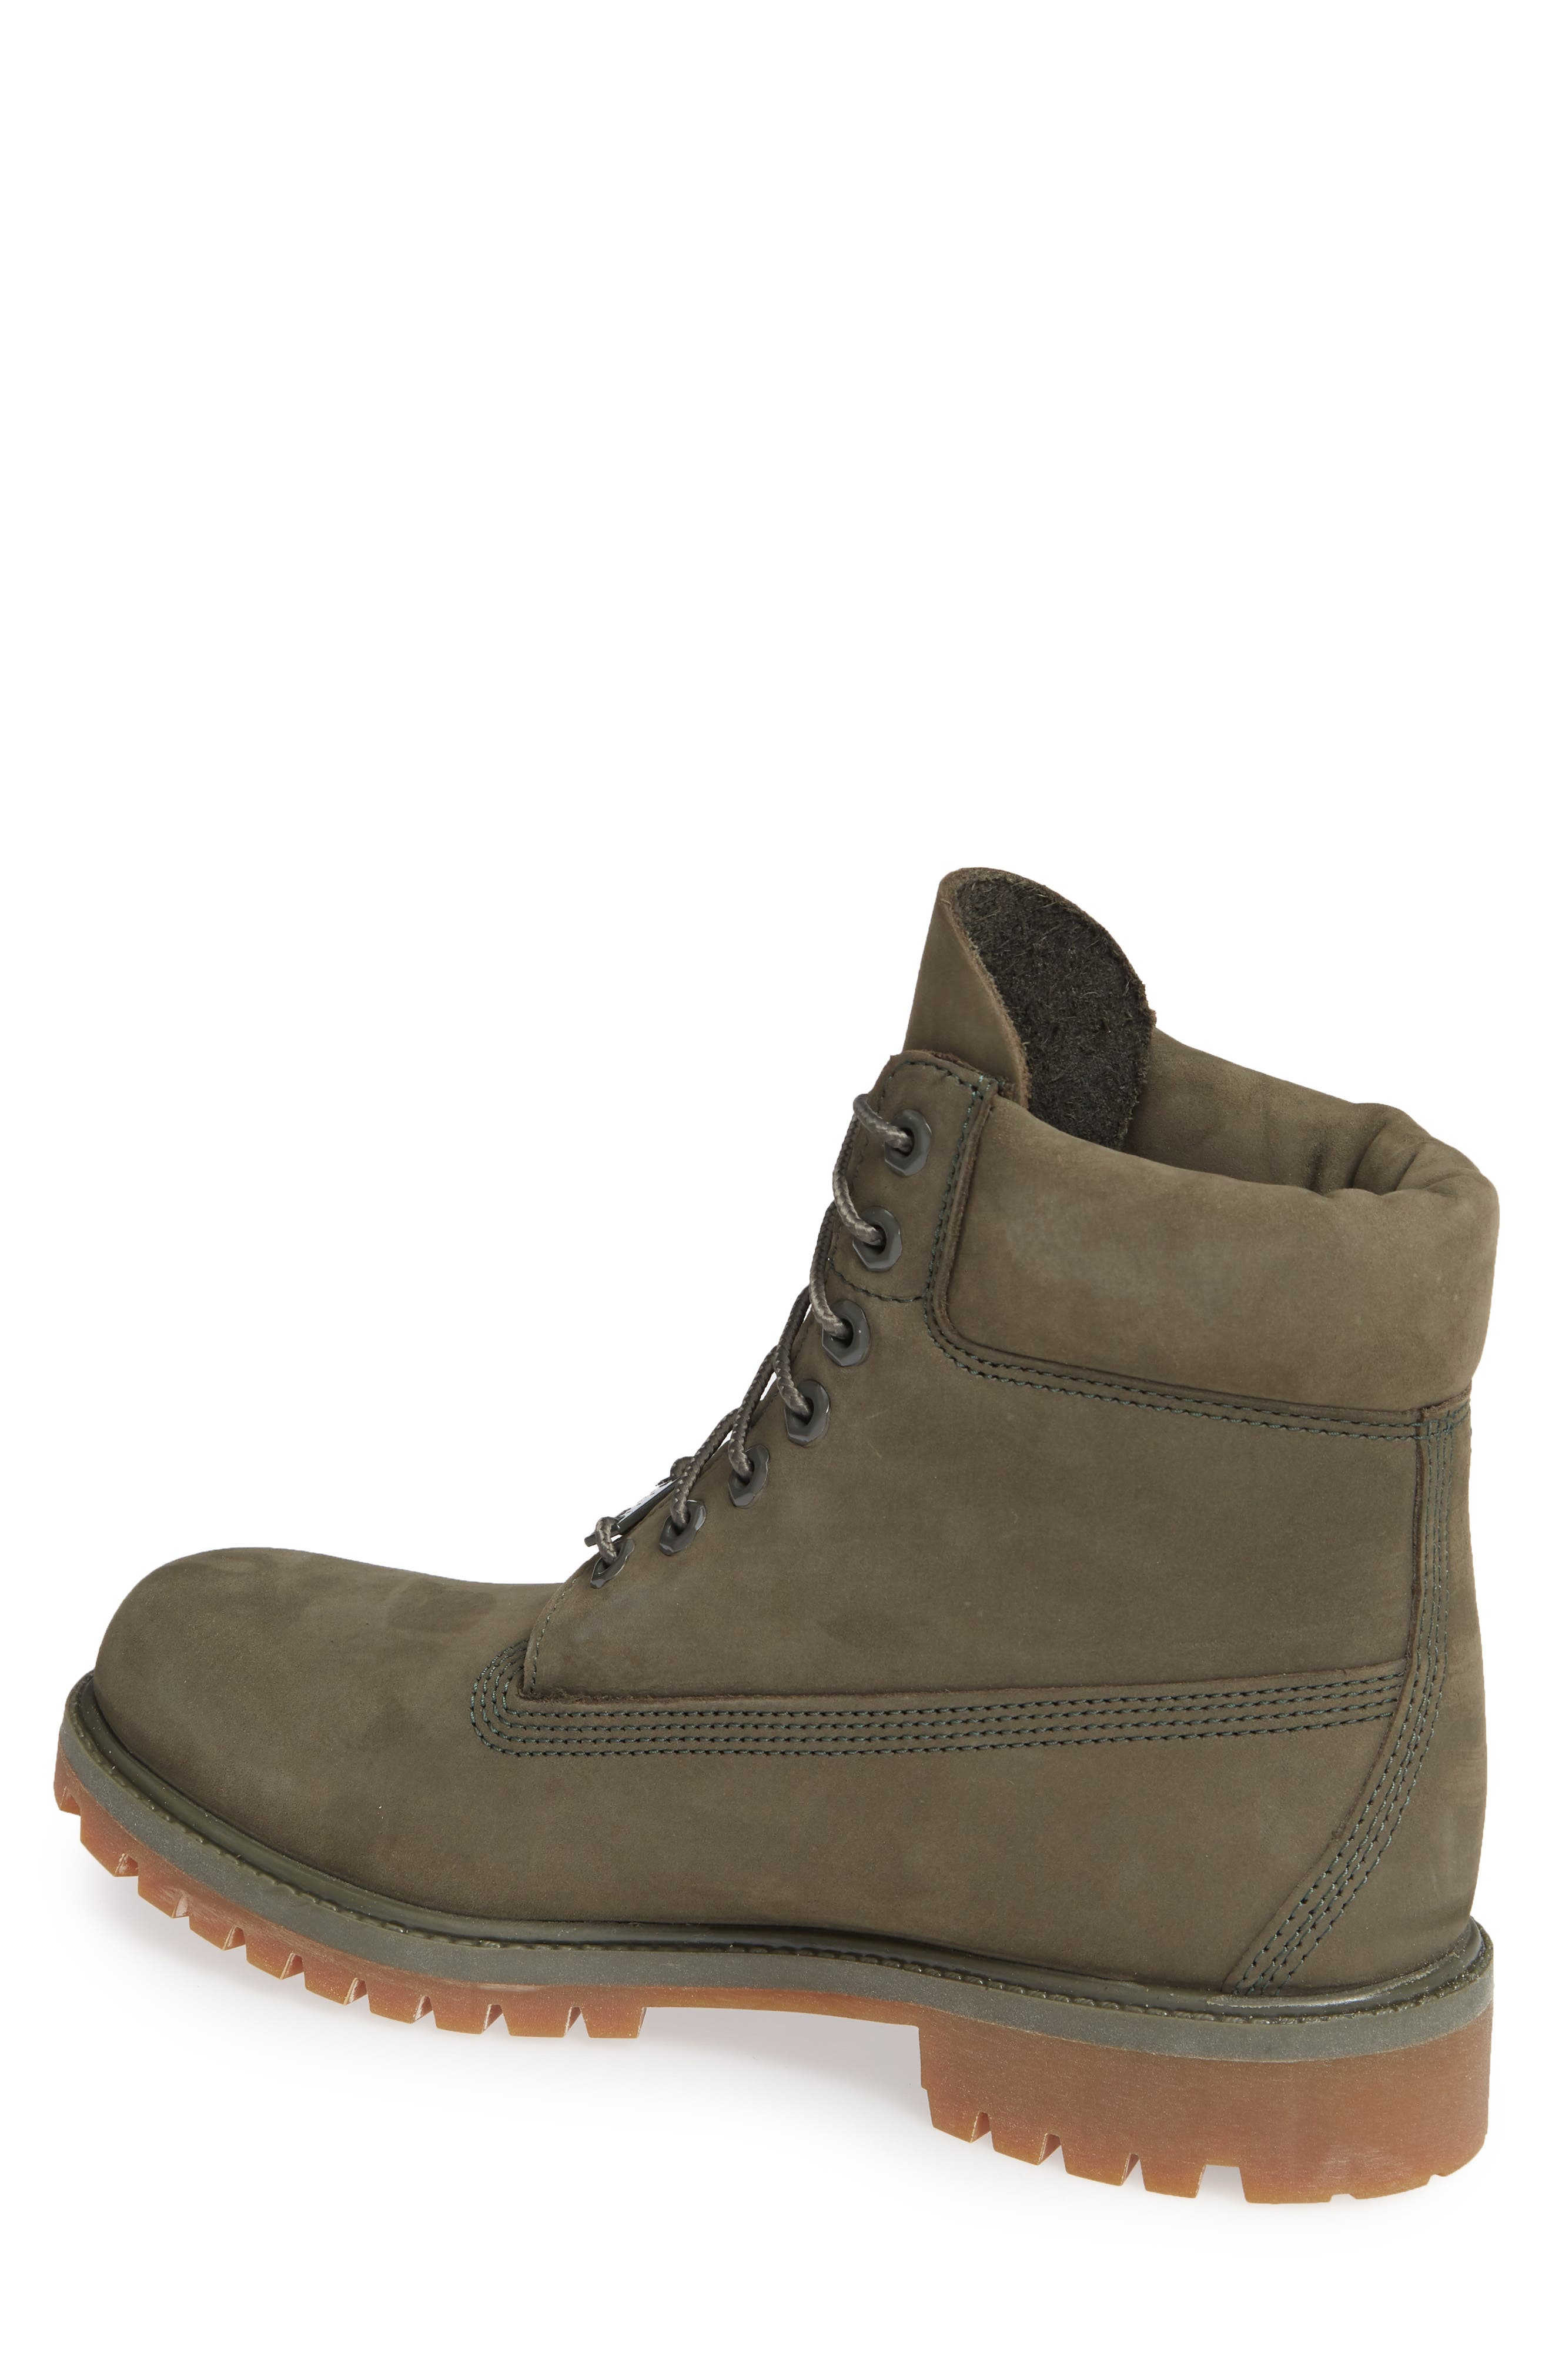 TIMBERLAND, Six Inch Classic Waterproof Boots Series - Premium Waterproof Boot, Alternate thumbnail 2, color, GRAPE LEAF LEATHER